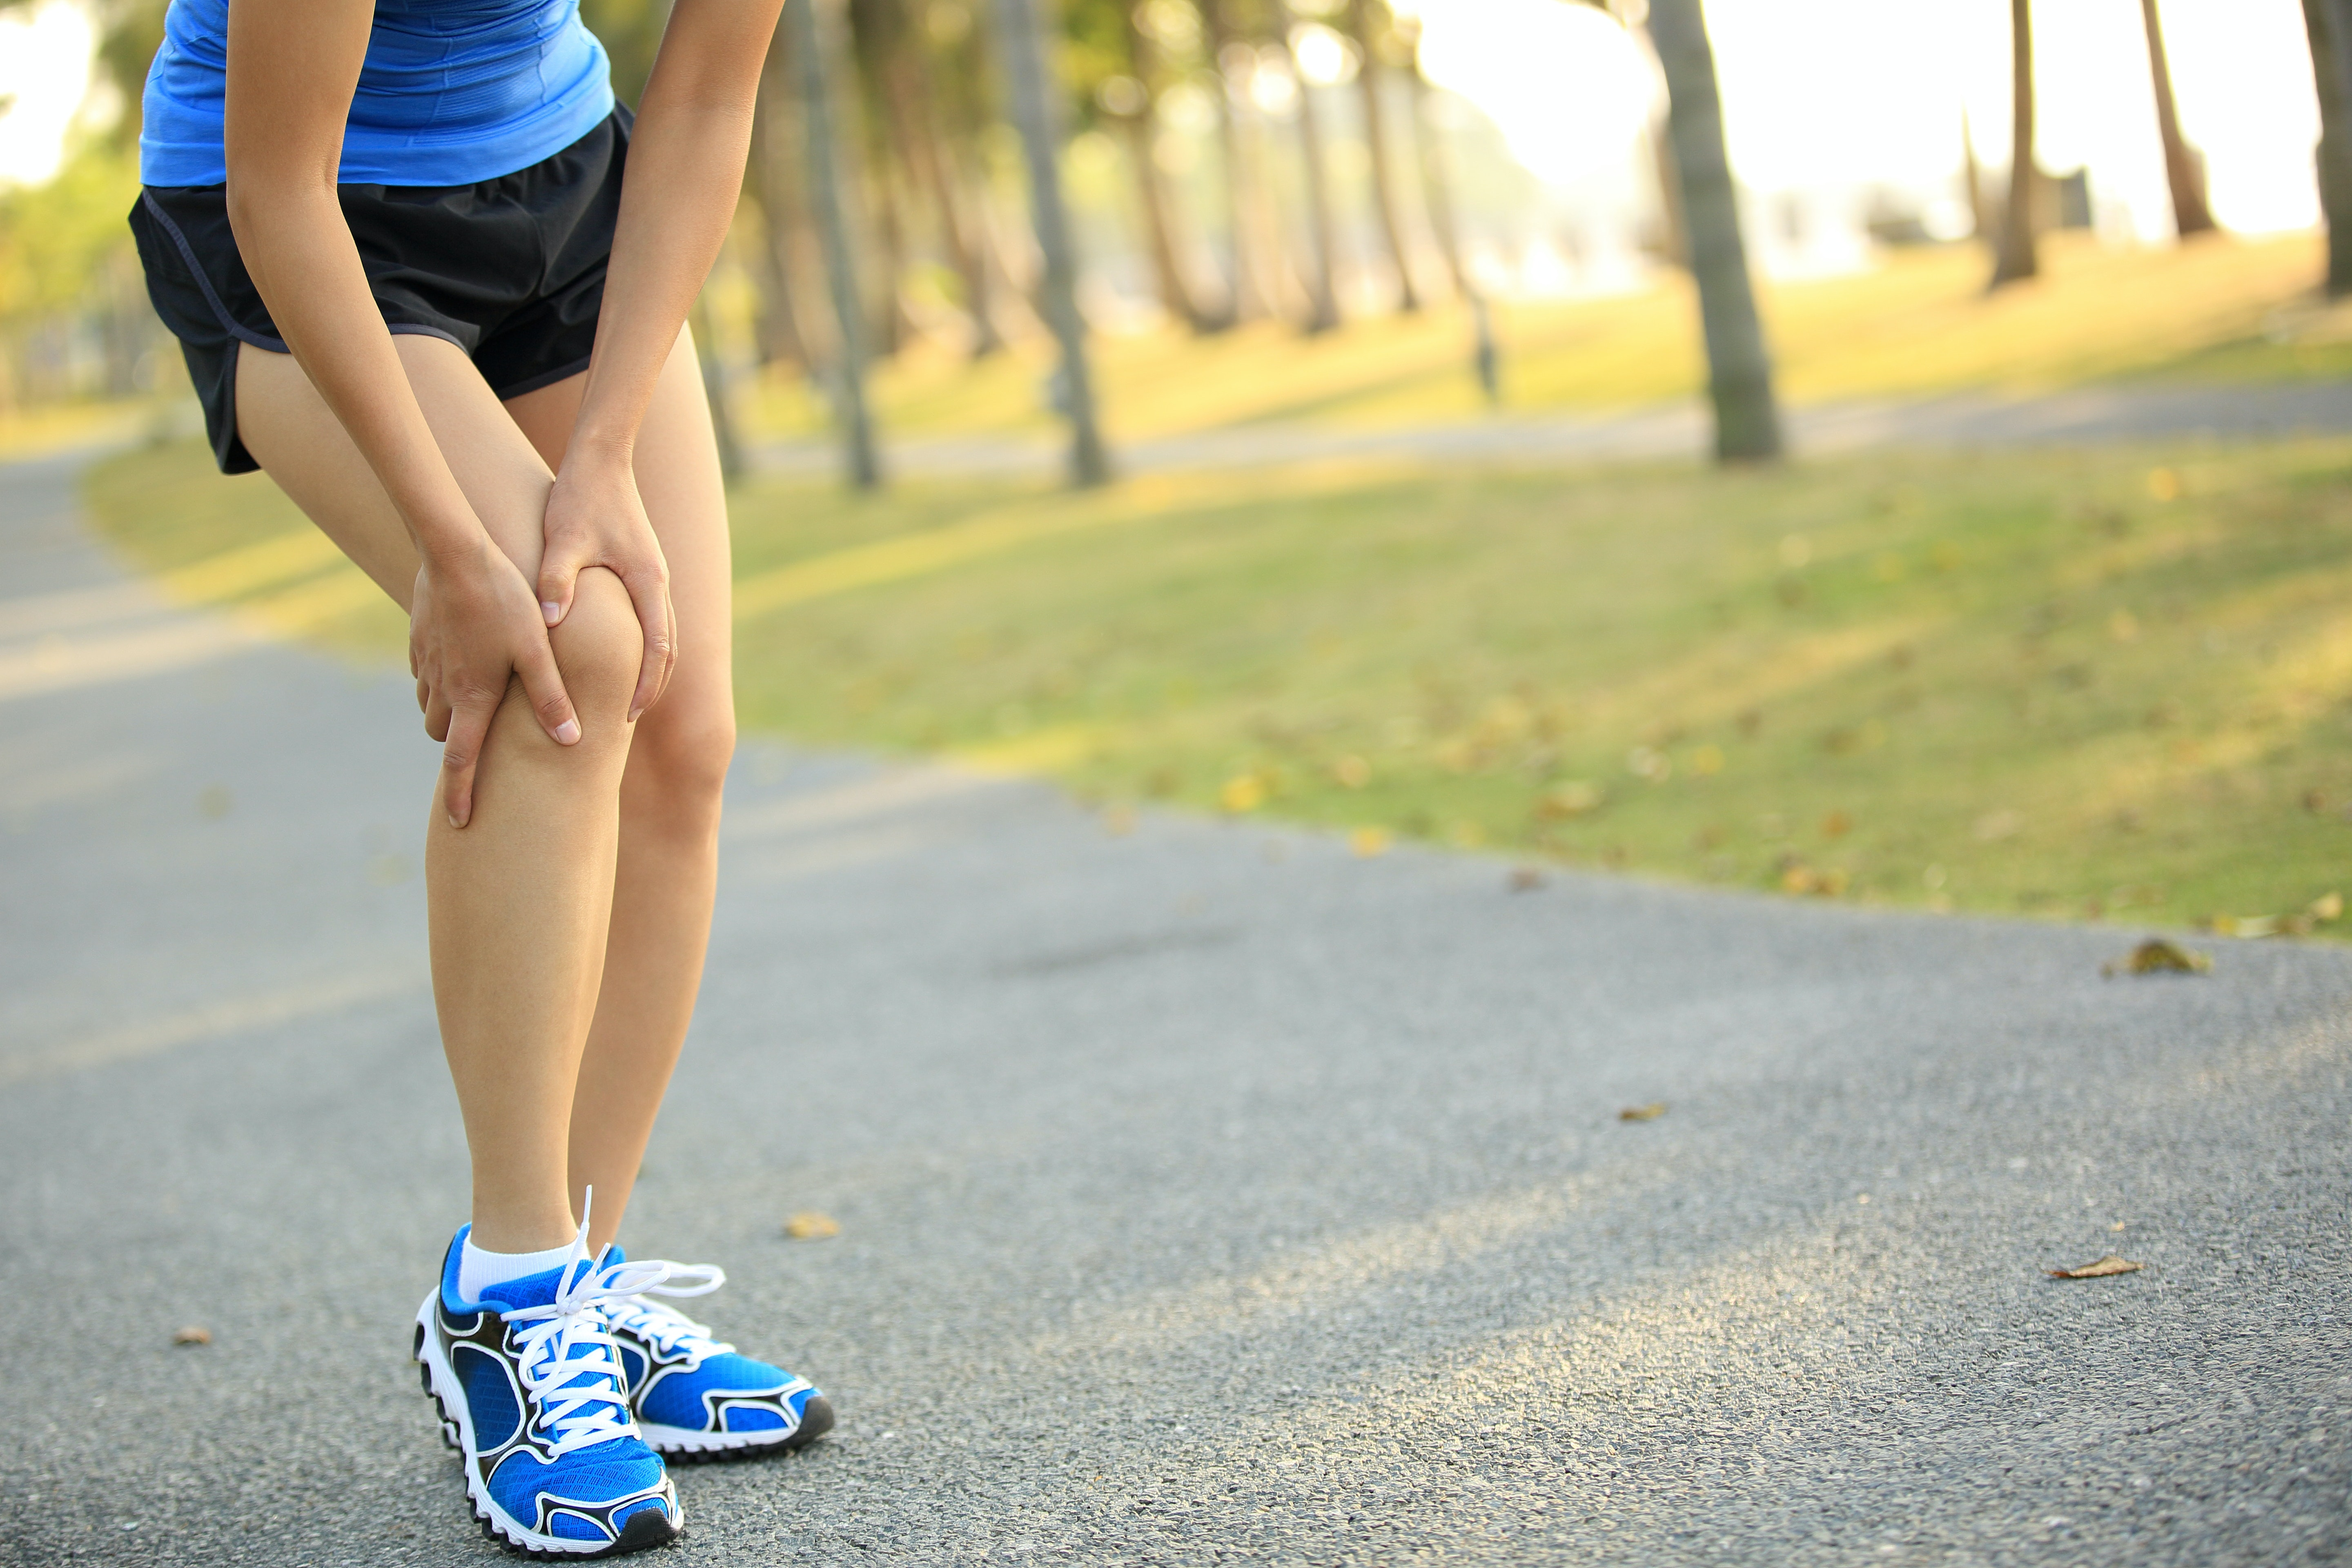 An image depicting a person suffering from pain in the outside of the knee symptoms